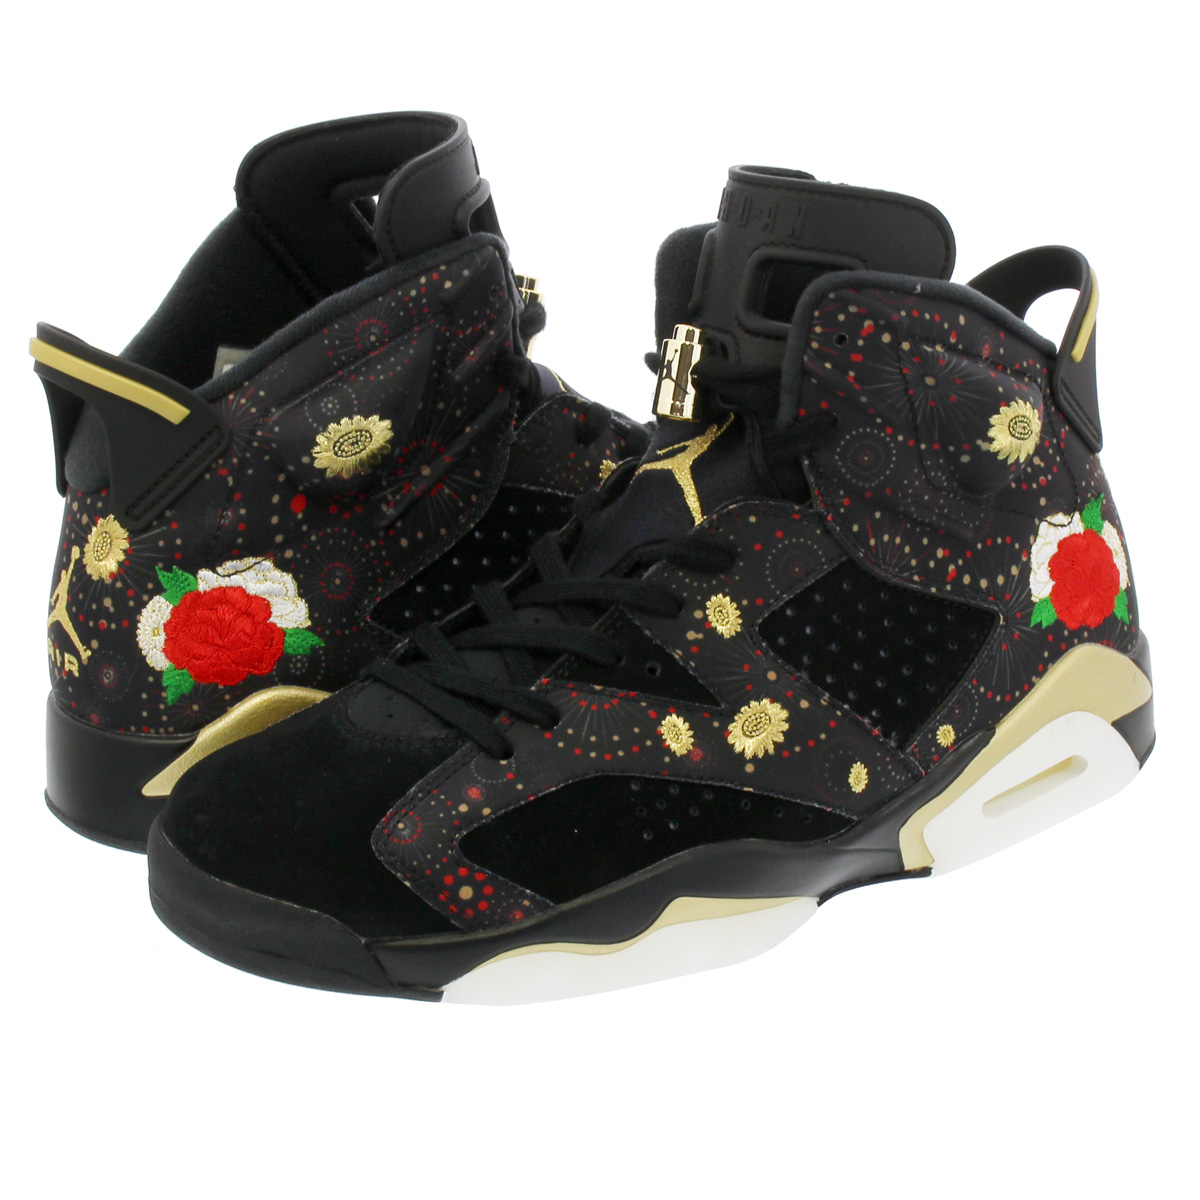 30a43bd1fd3 NIKE AIR JORDAN 6 RETRO CNY Nike Air Jordan 6 nostalgic CNY BLACK MULTI  COLOR SUMMIT WHITE METALLIC GOLD